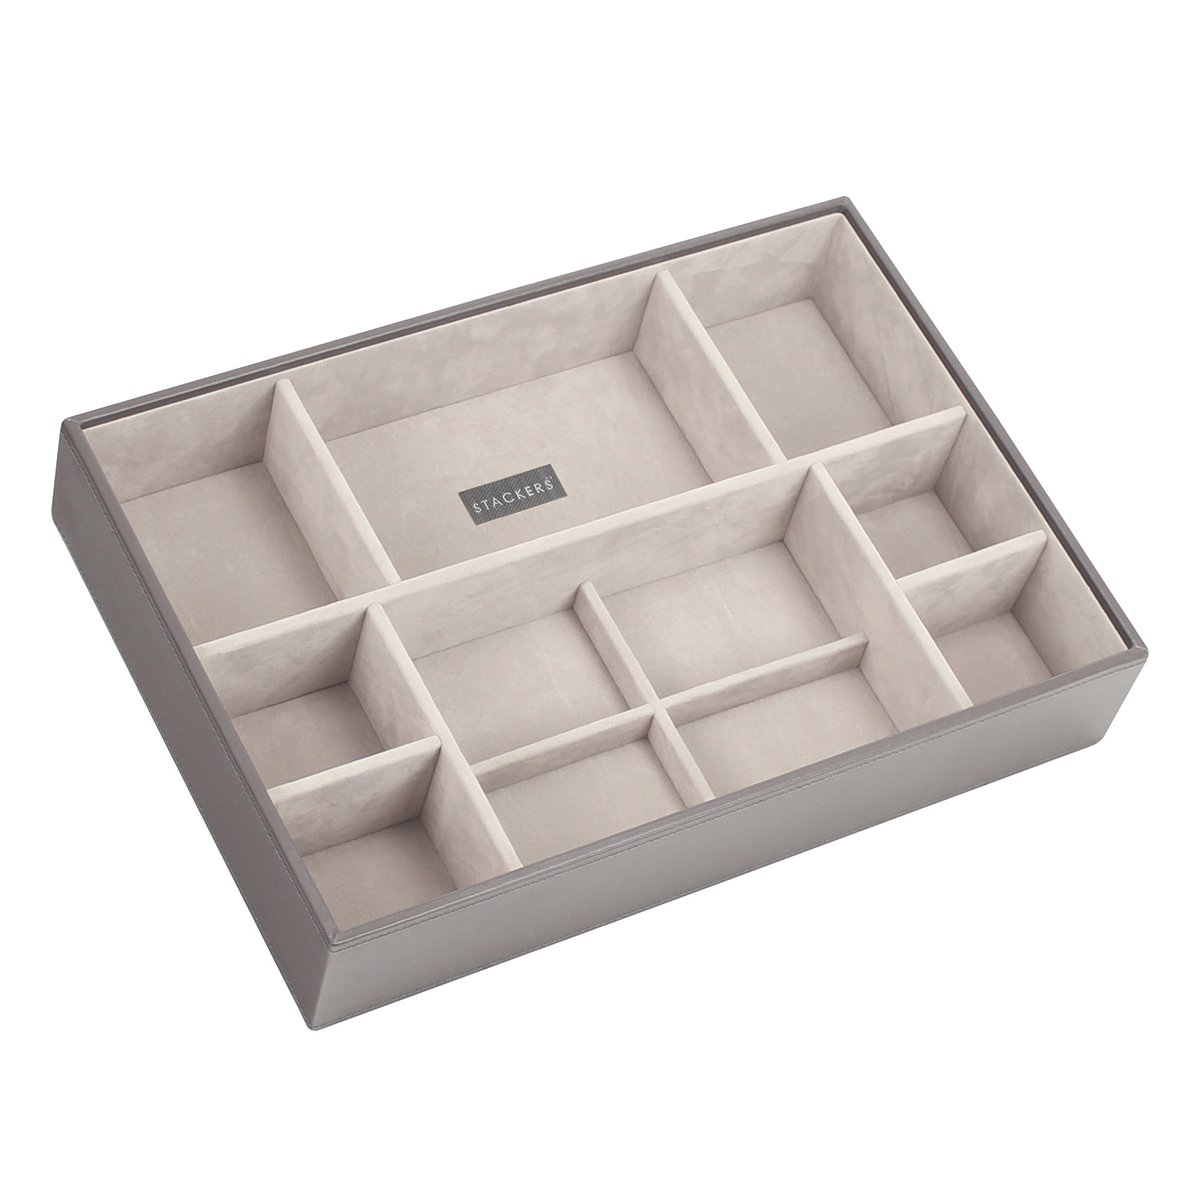 STACKERS 'SUPERSIZE' Mink Deep Section STACKER Jewellery Box with Grey Velvet Lining. Carters of London 73107